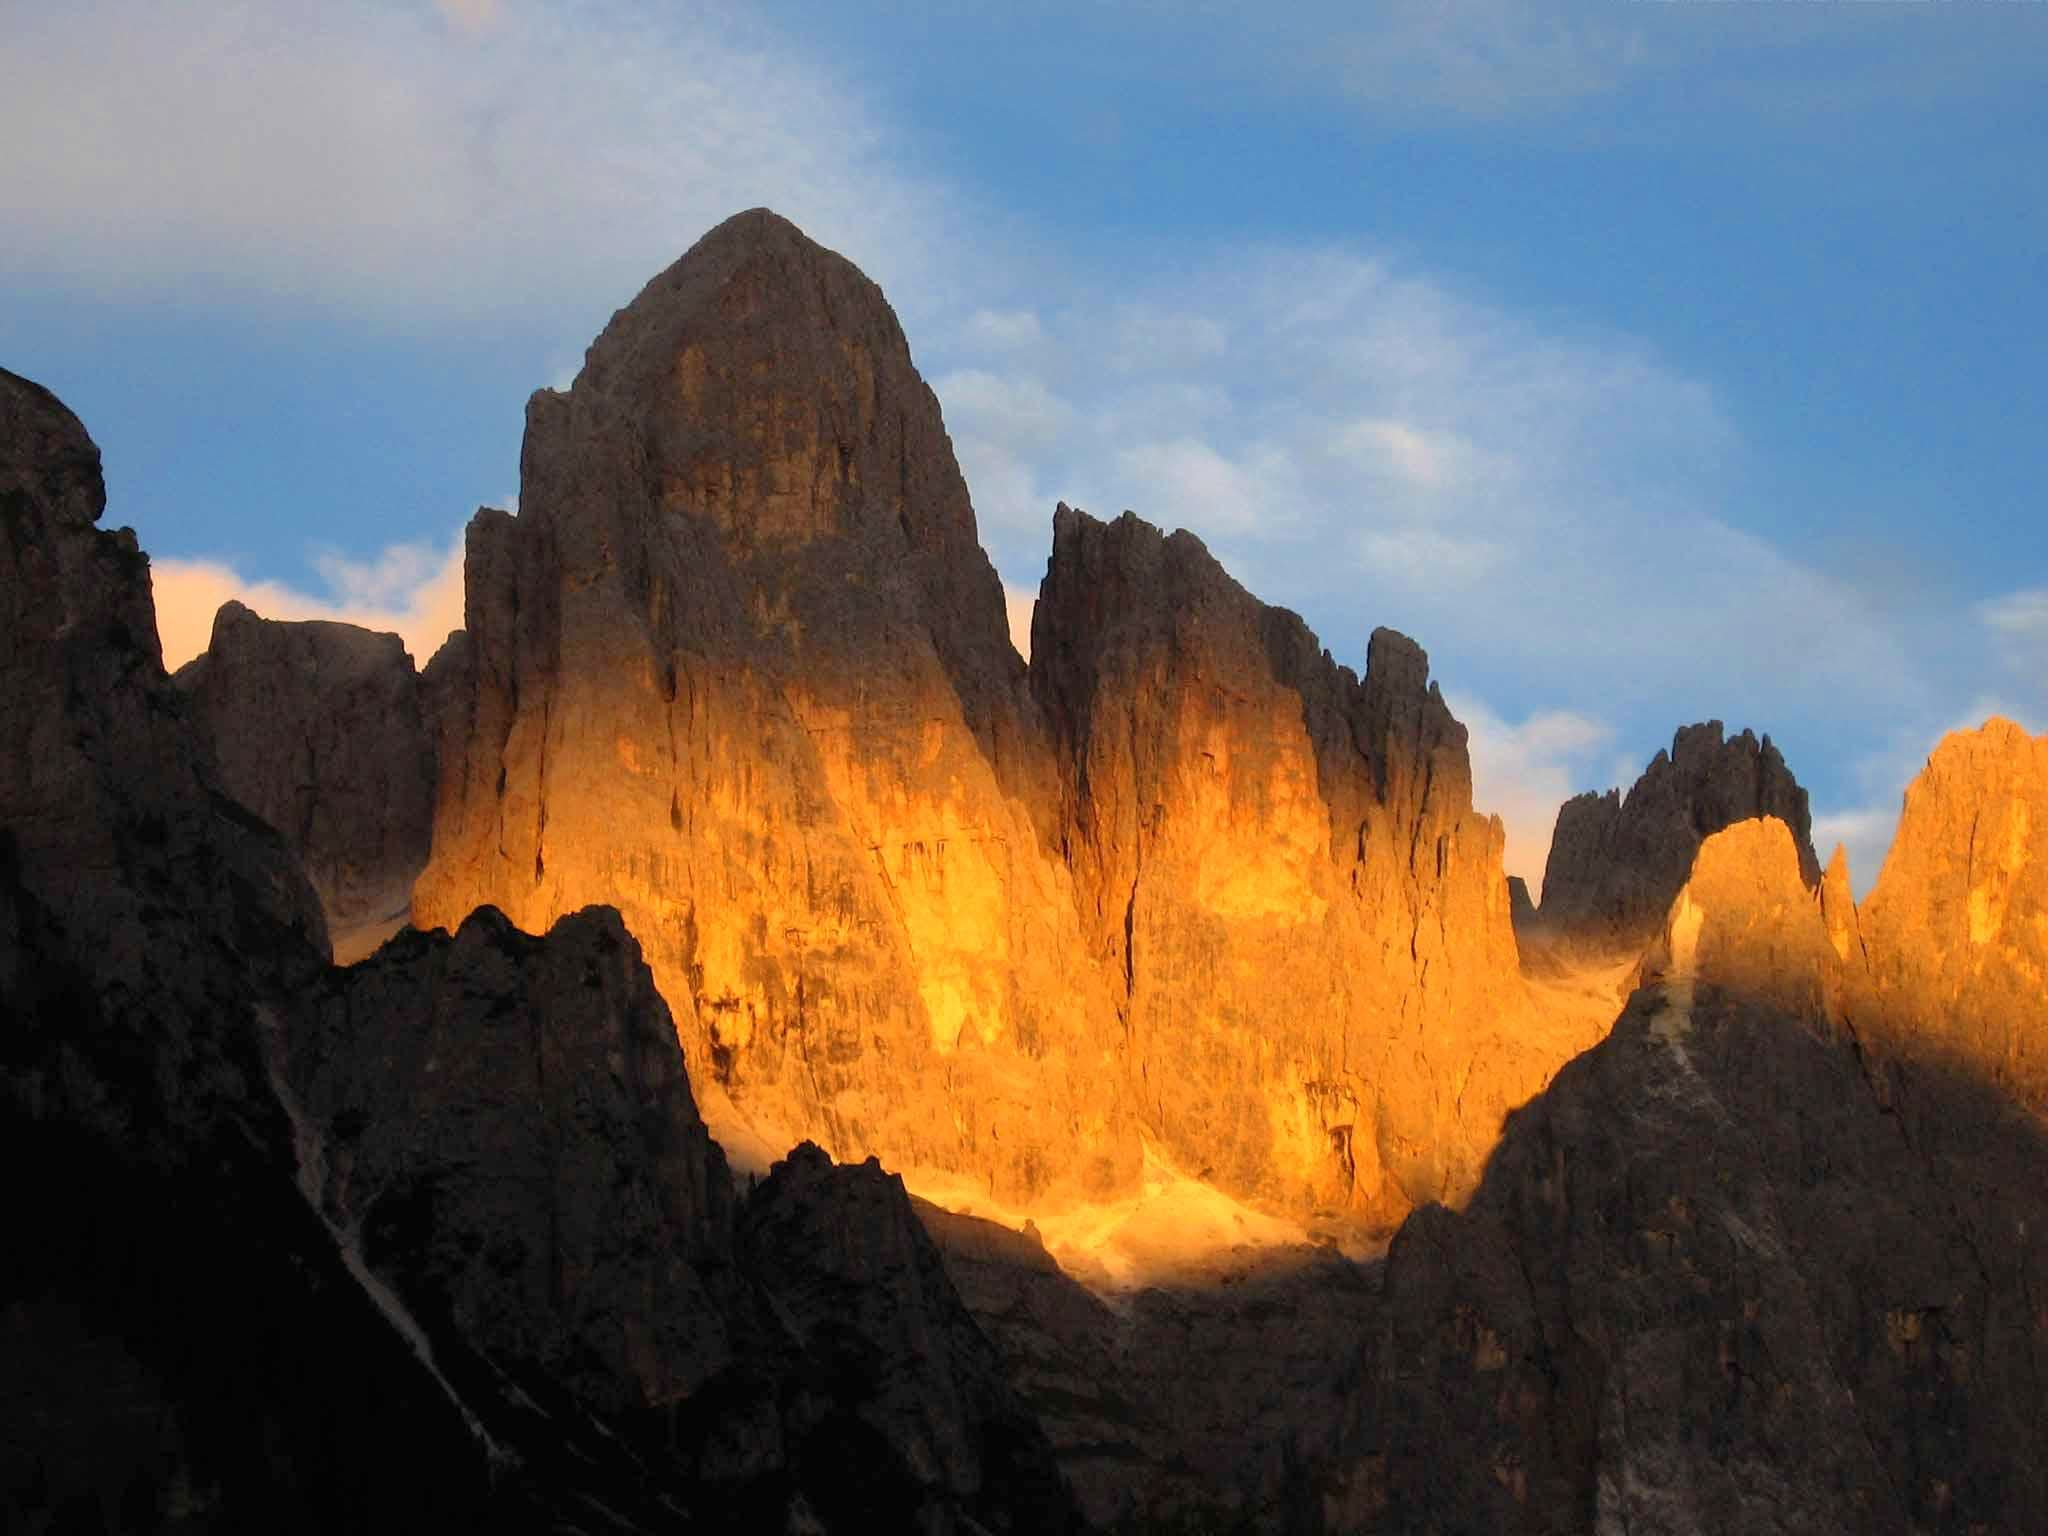 Dolomites dawn and sunset